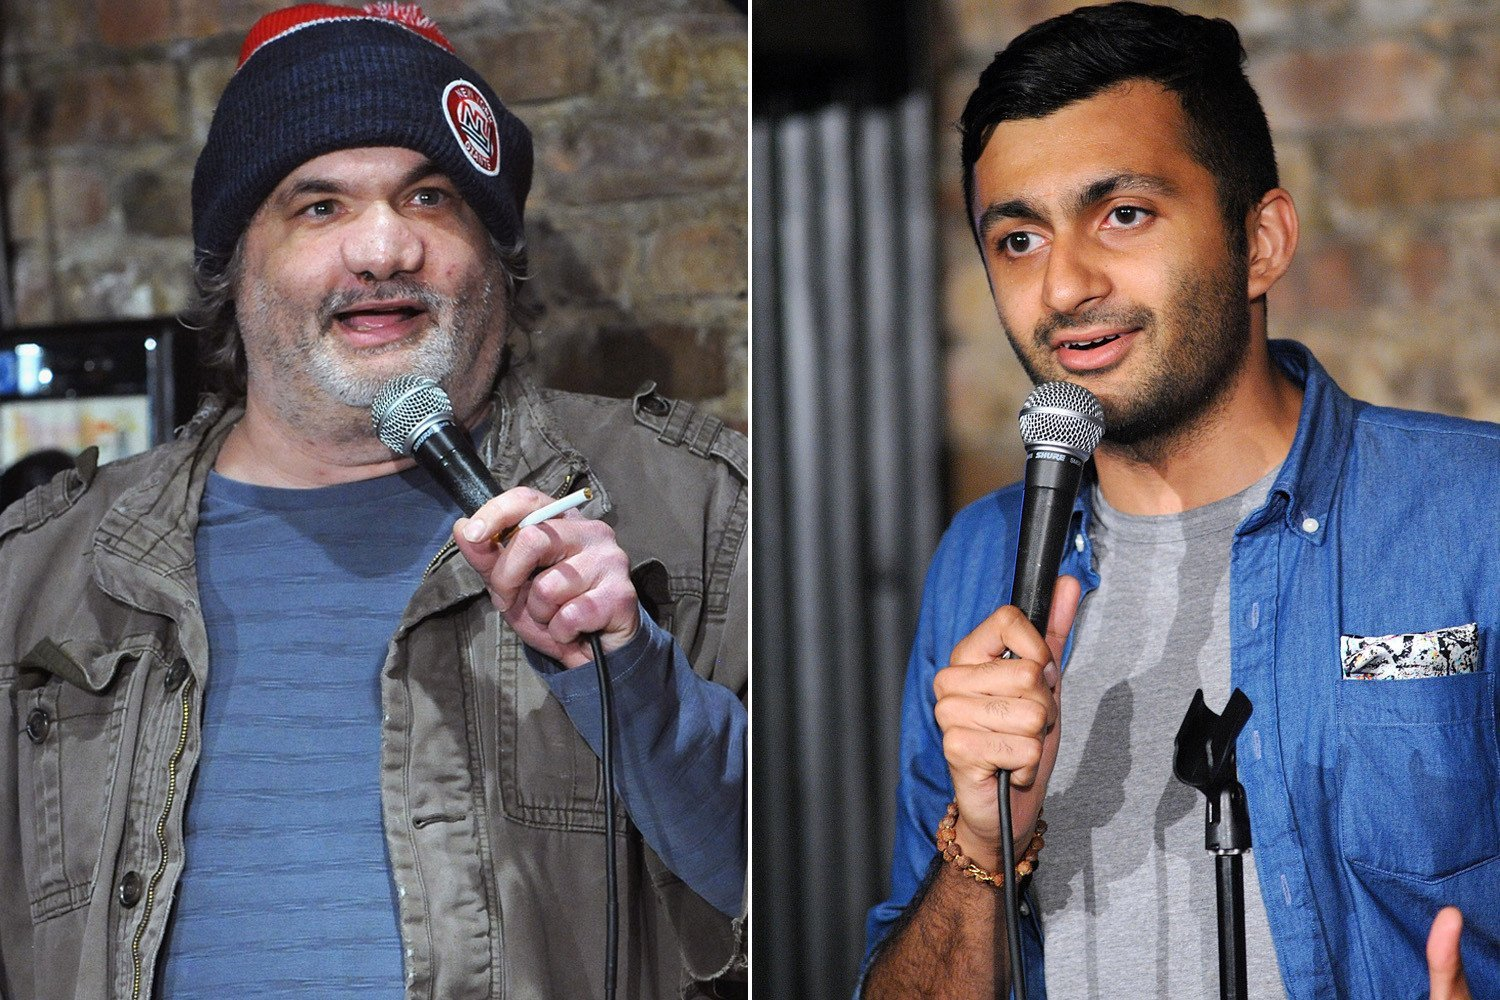 Artie Lange and Nimesh Patel cut from 'Comedy Cellar' show